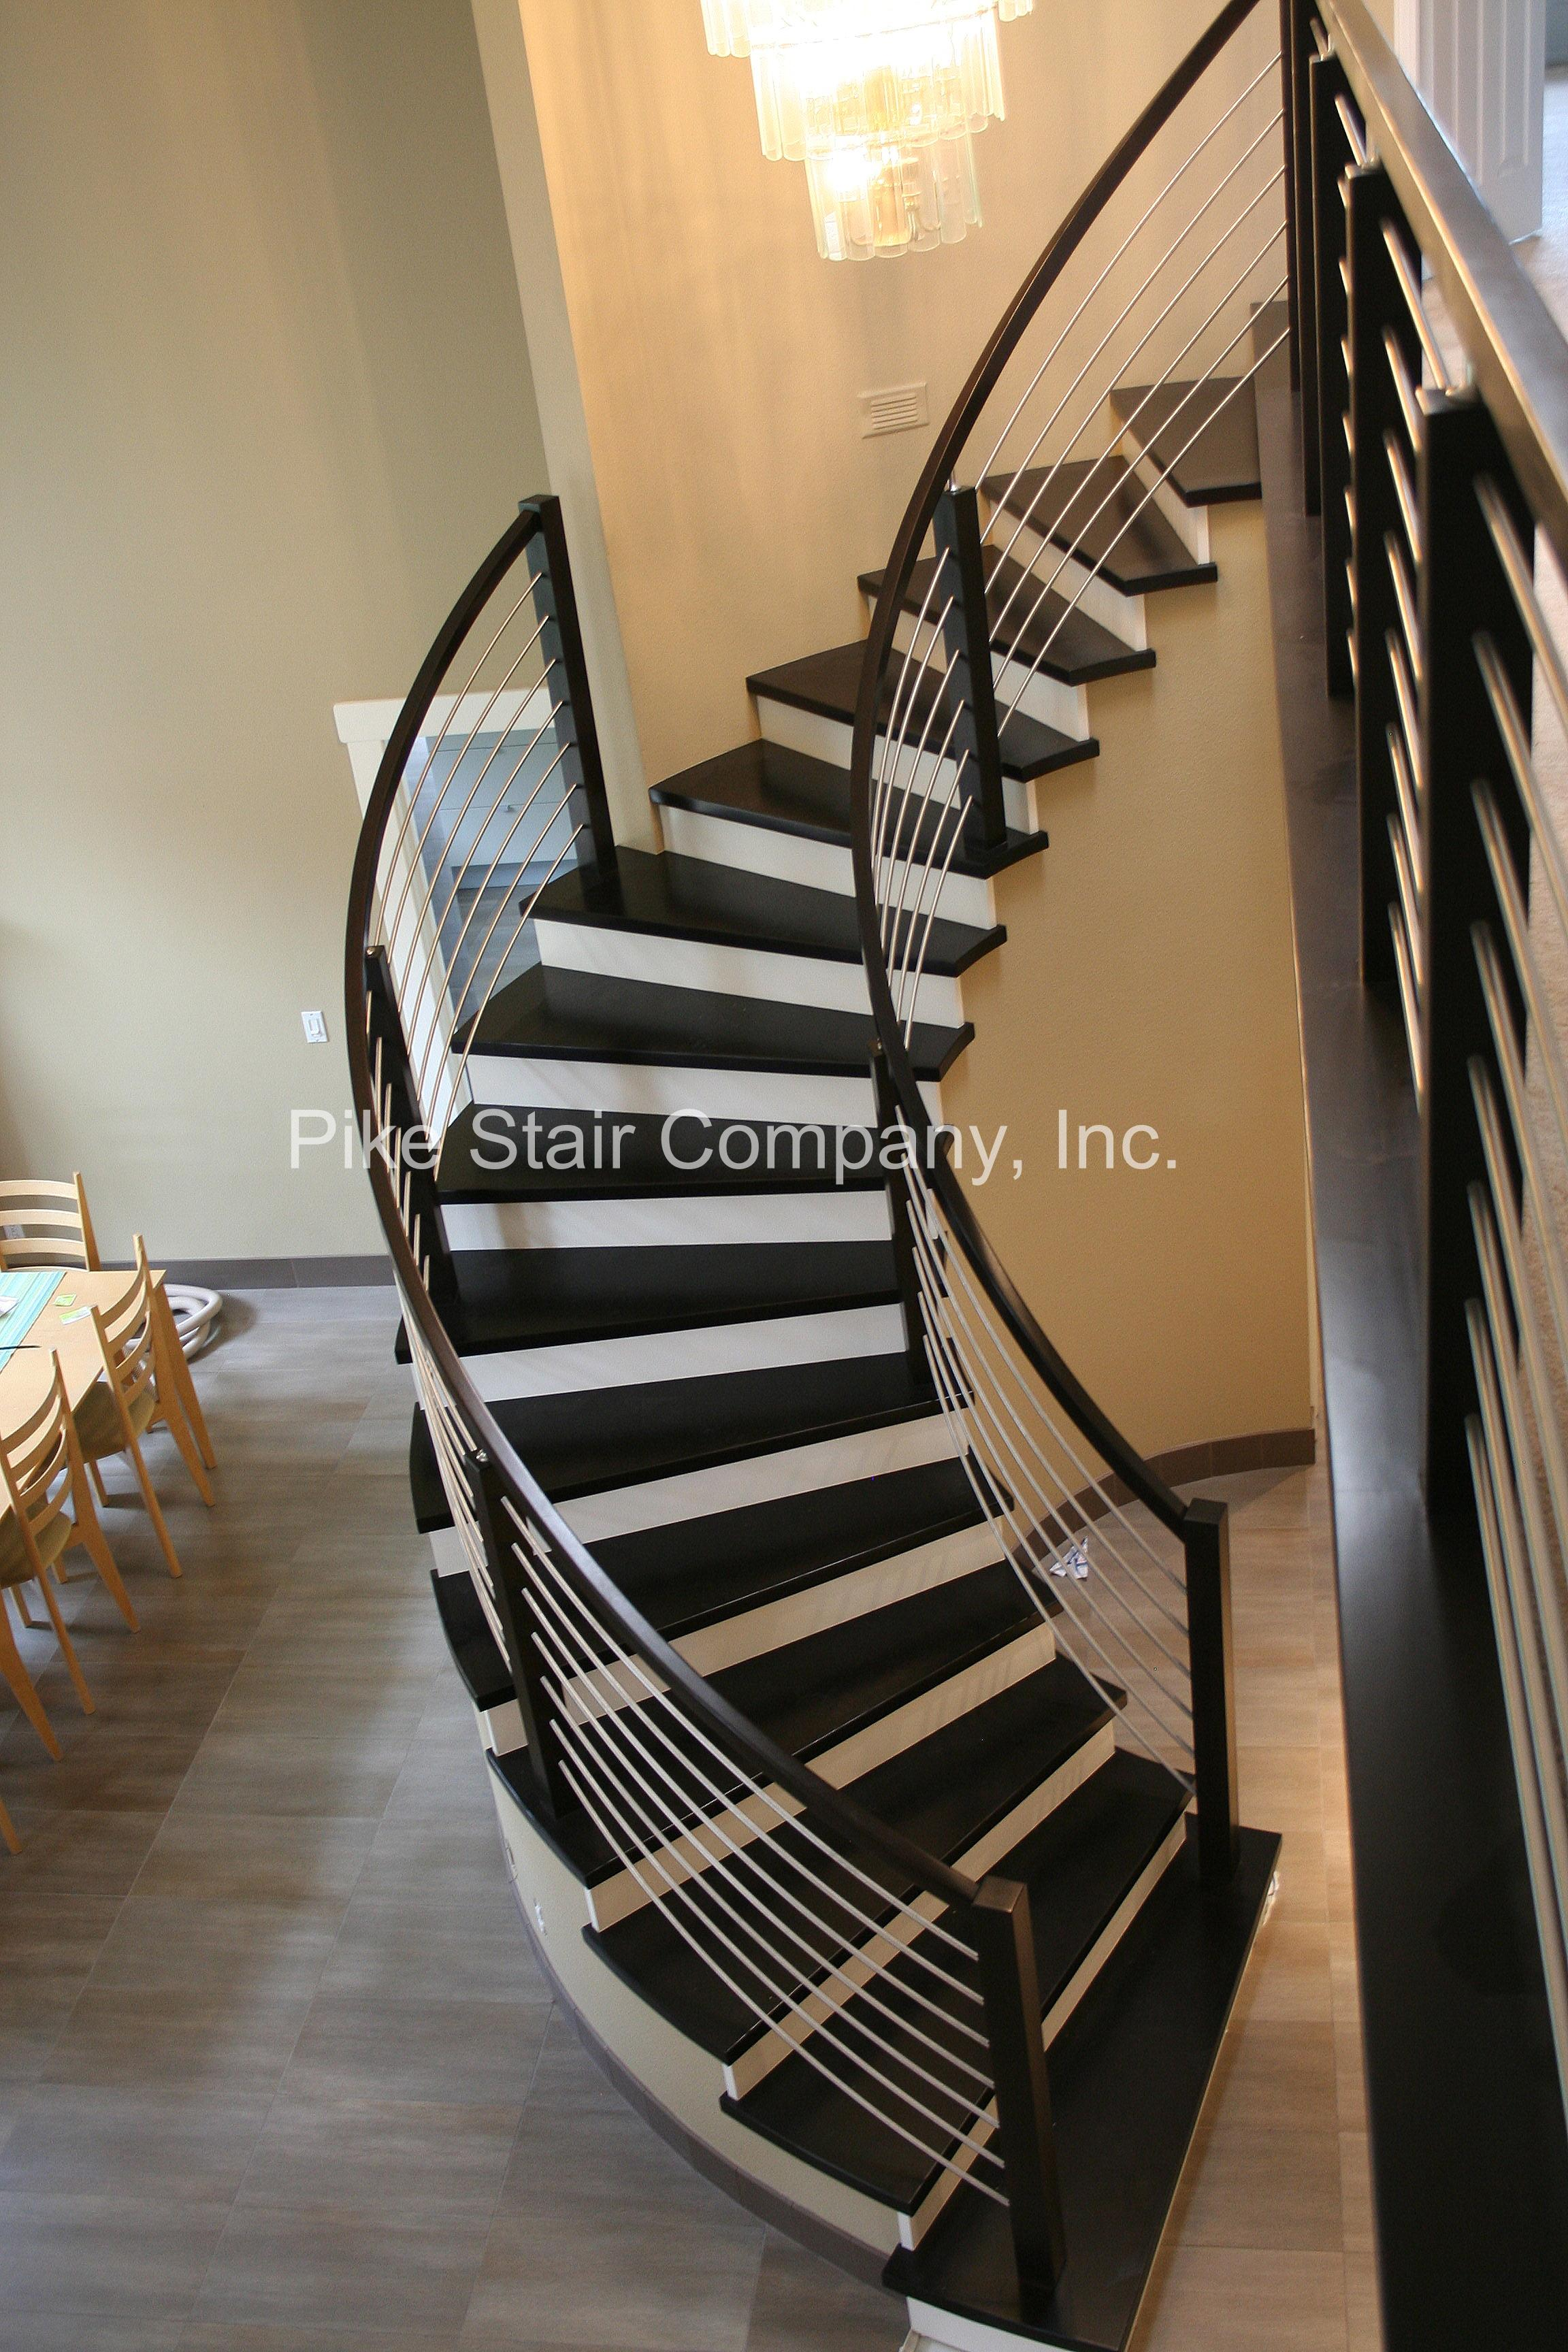 Great Pike Stair Company Photos. Carlsbad Stair Remodeling Project